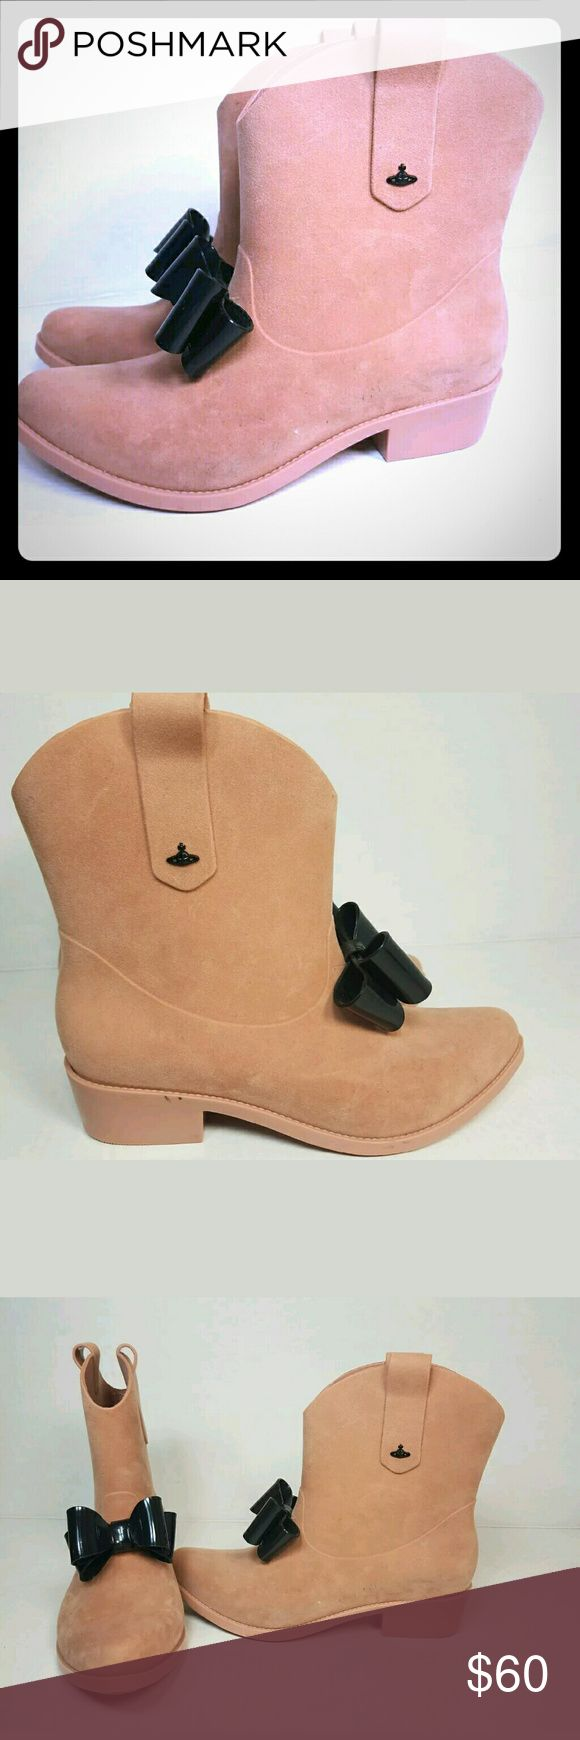 Vivienne westwood Melissa bow cowboy rain boot In great condition this is a rare colorway so don't miss out. If you have any questions let me know Vivienne Westwood Shoes